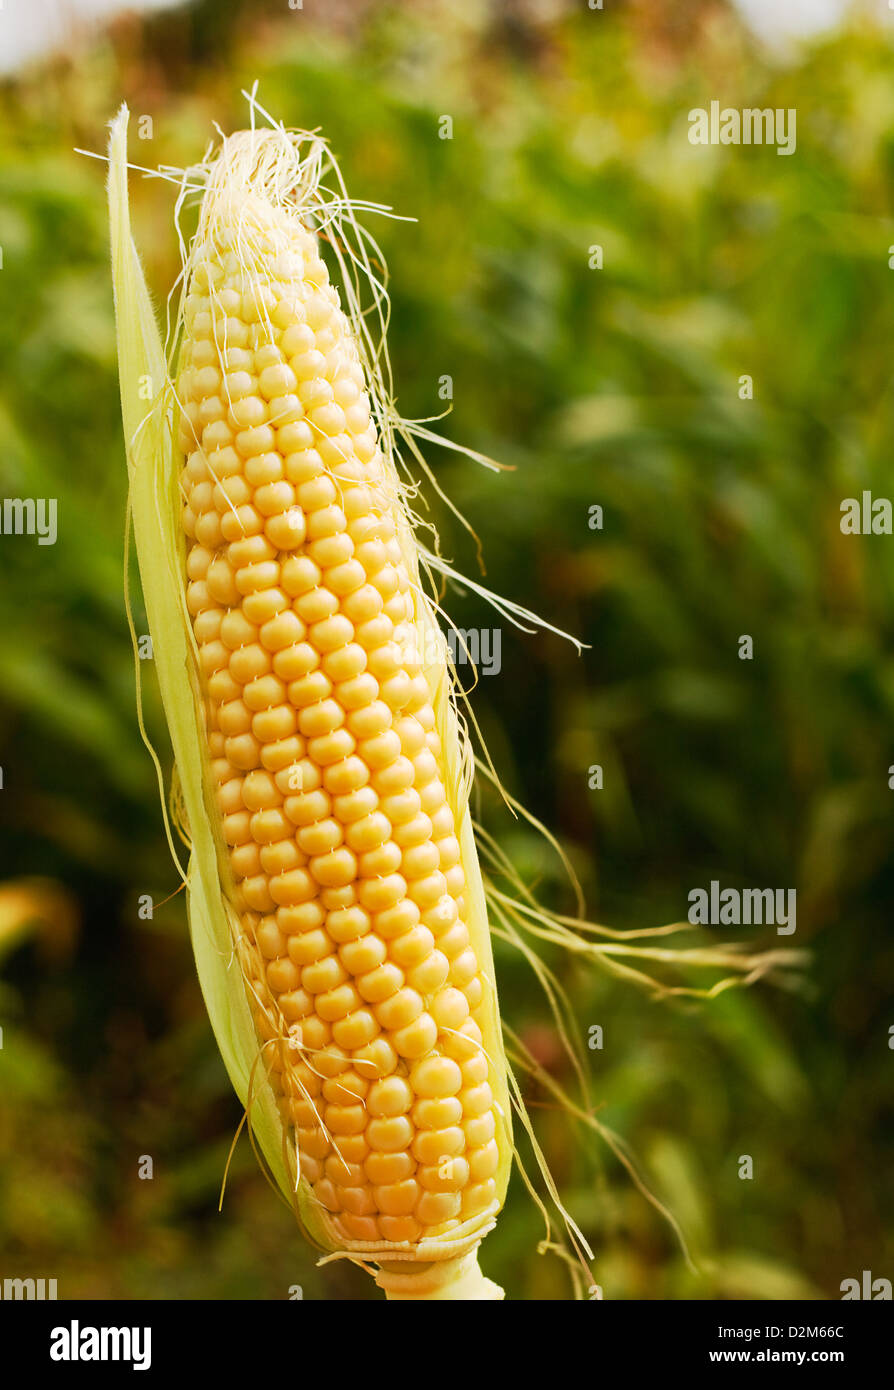 ear of maize or corn a popular farm animal feed or forage now often genetically modified for increased yield. - Stock Image